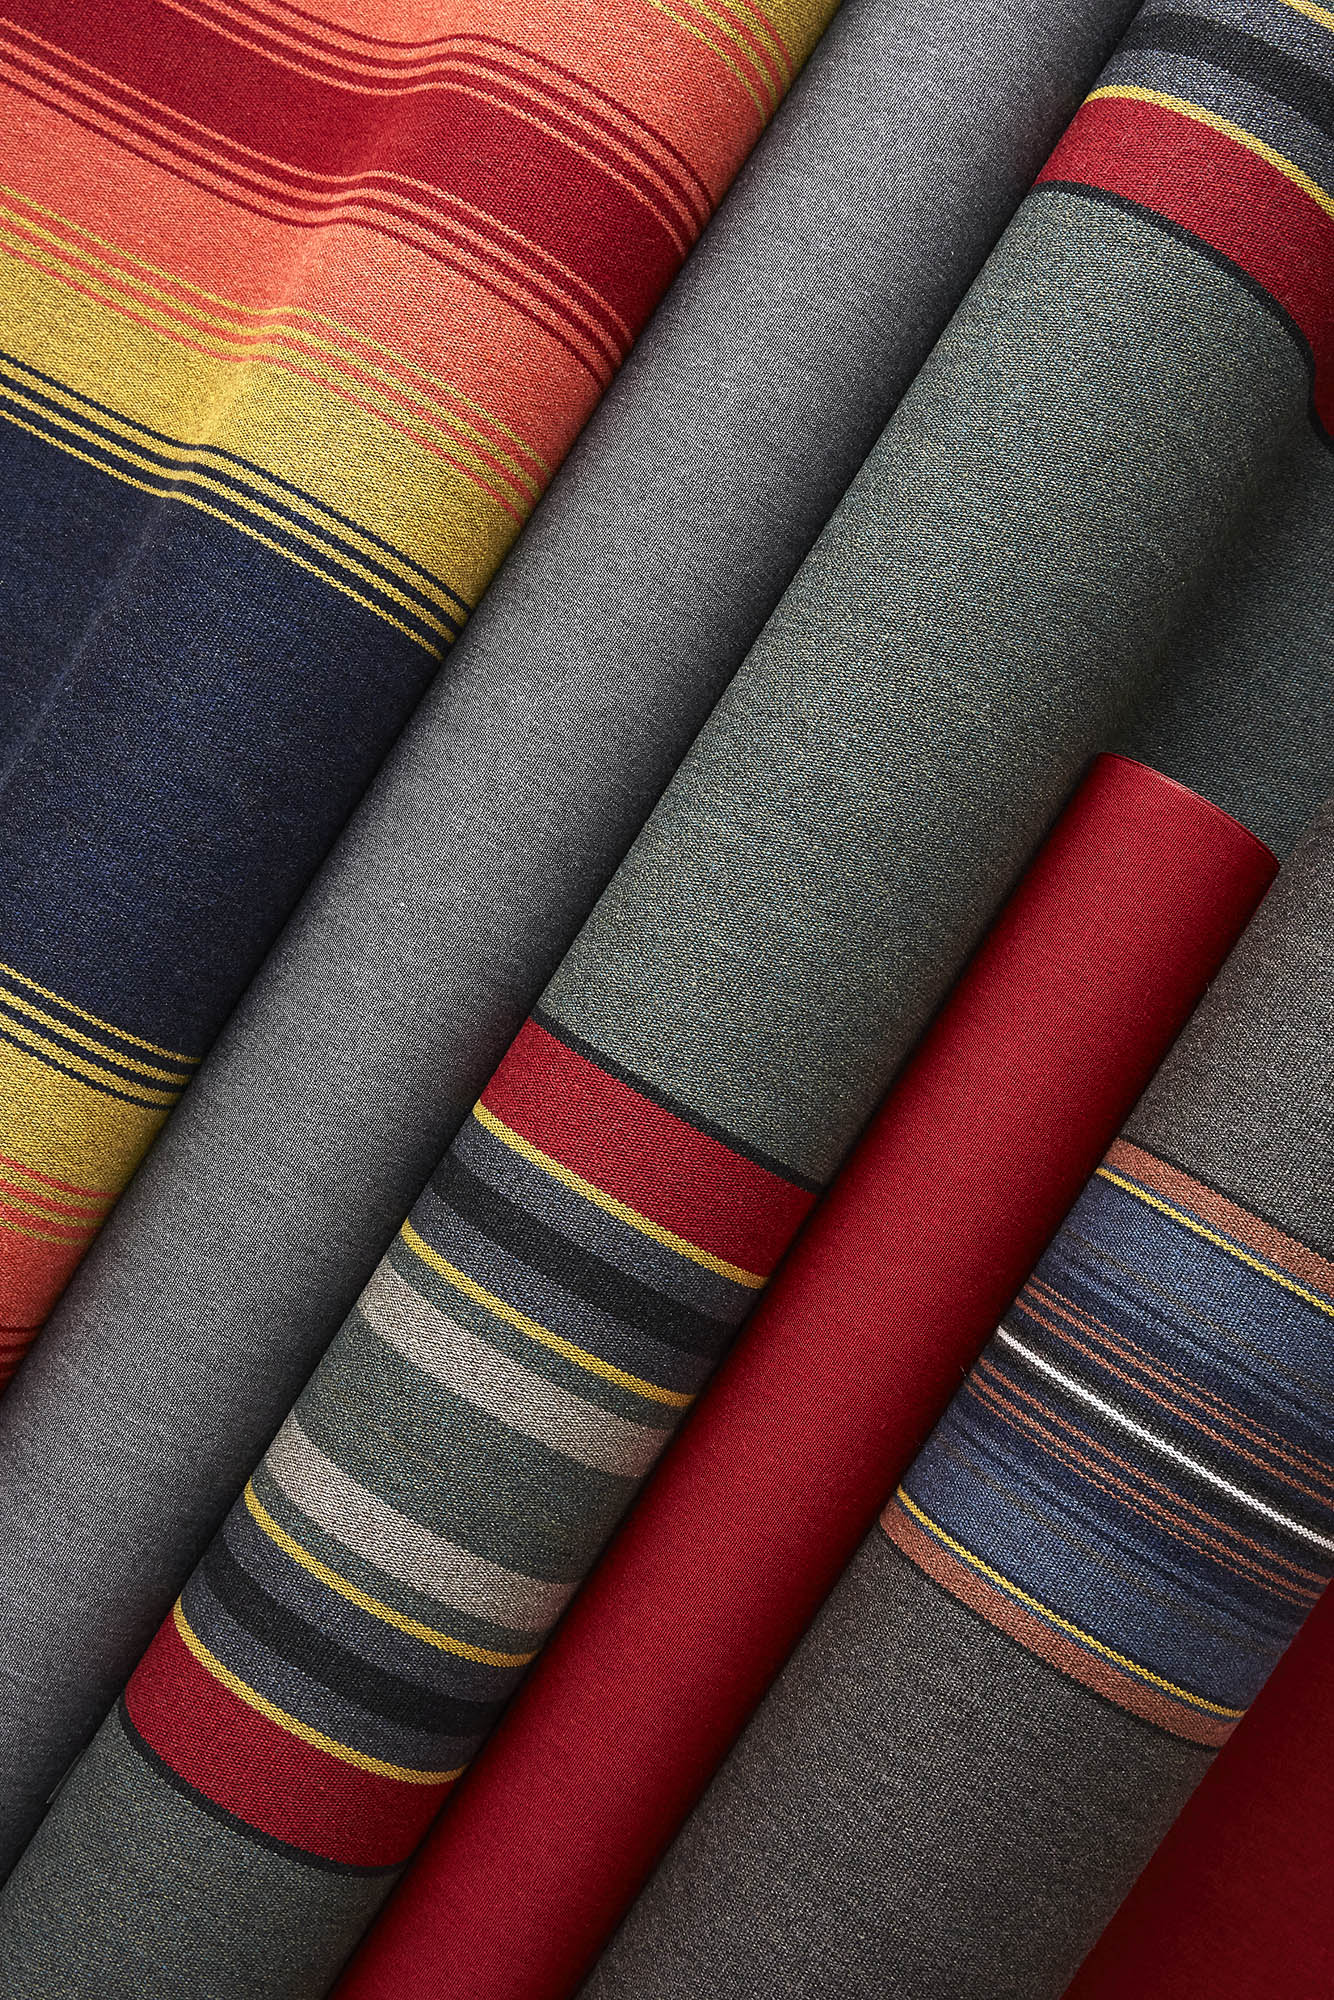 Sunbrella shade fabrics featuring the Pendleton stripes